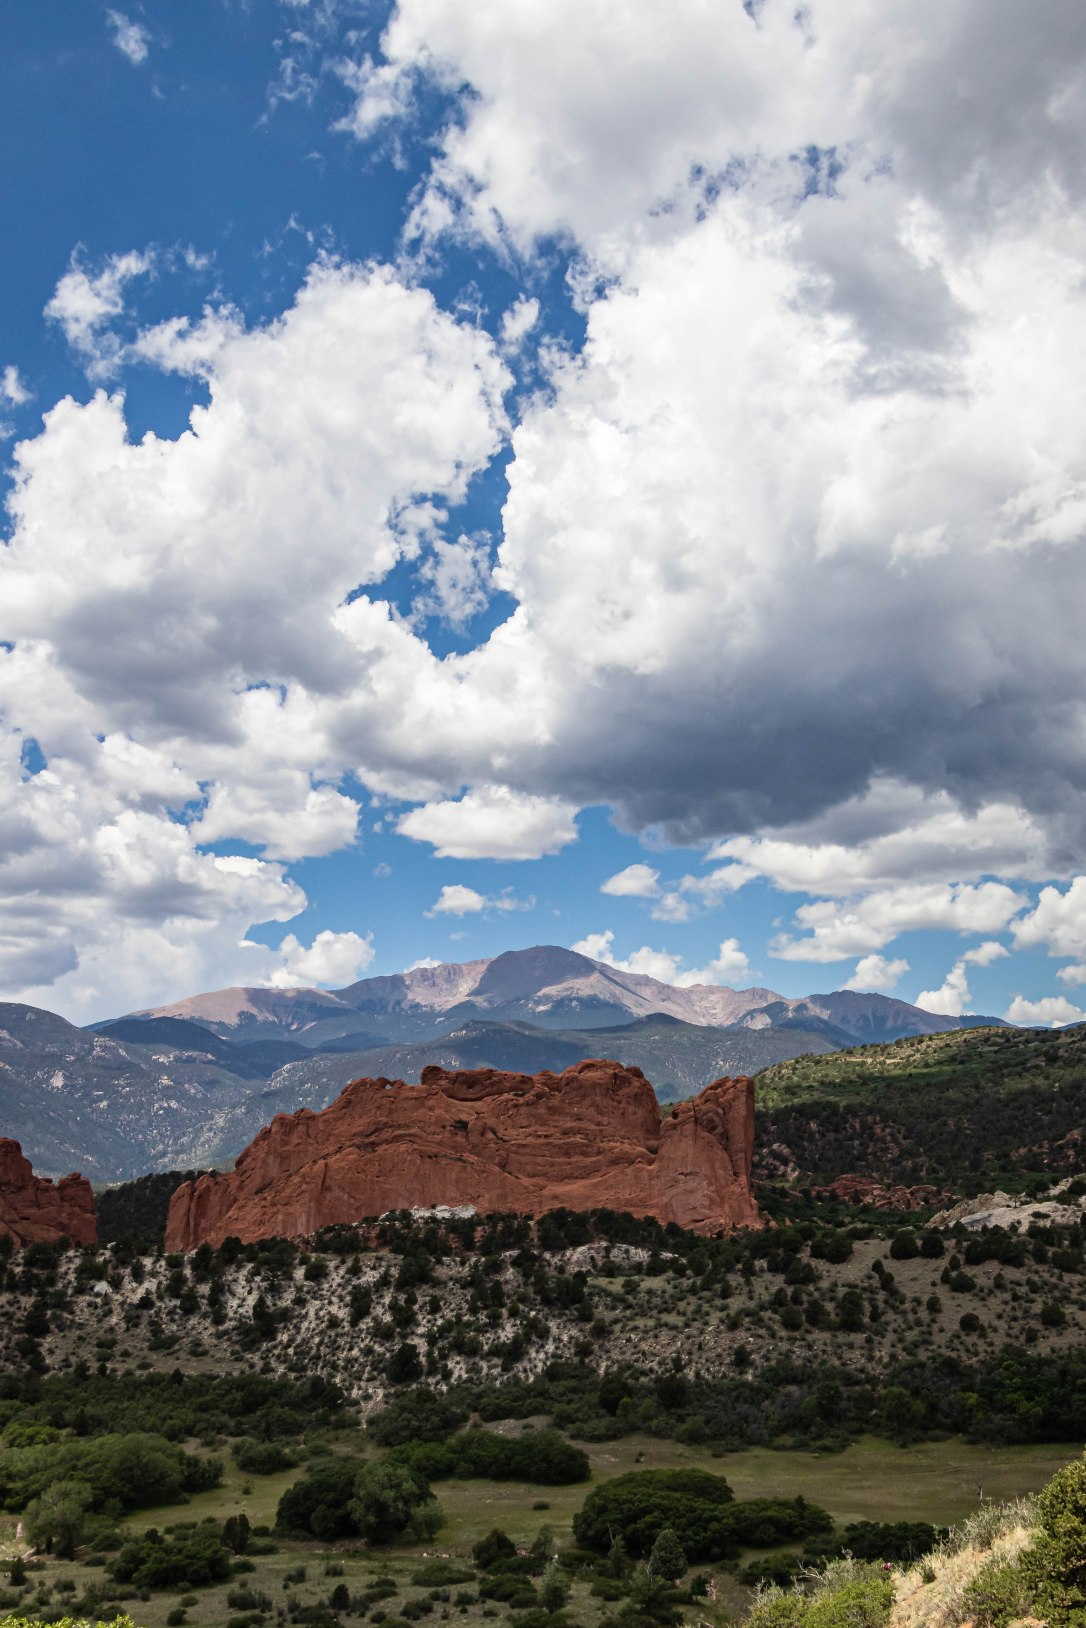 07-04-20Pikespeak2